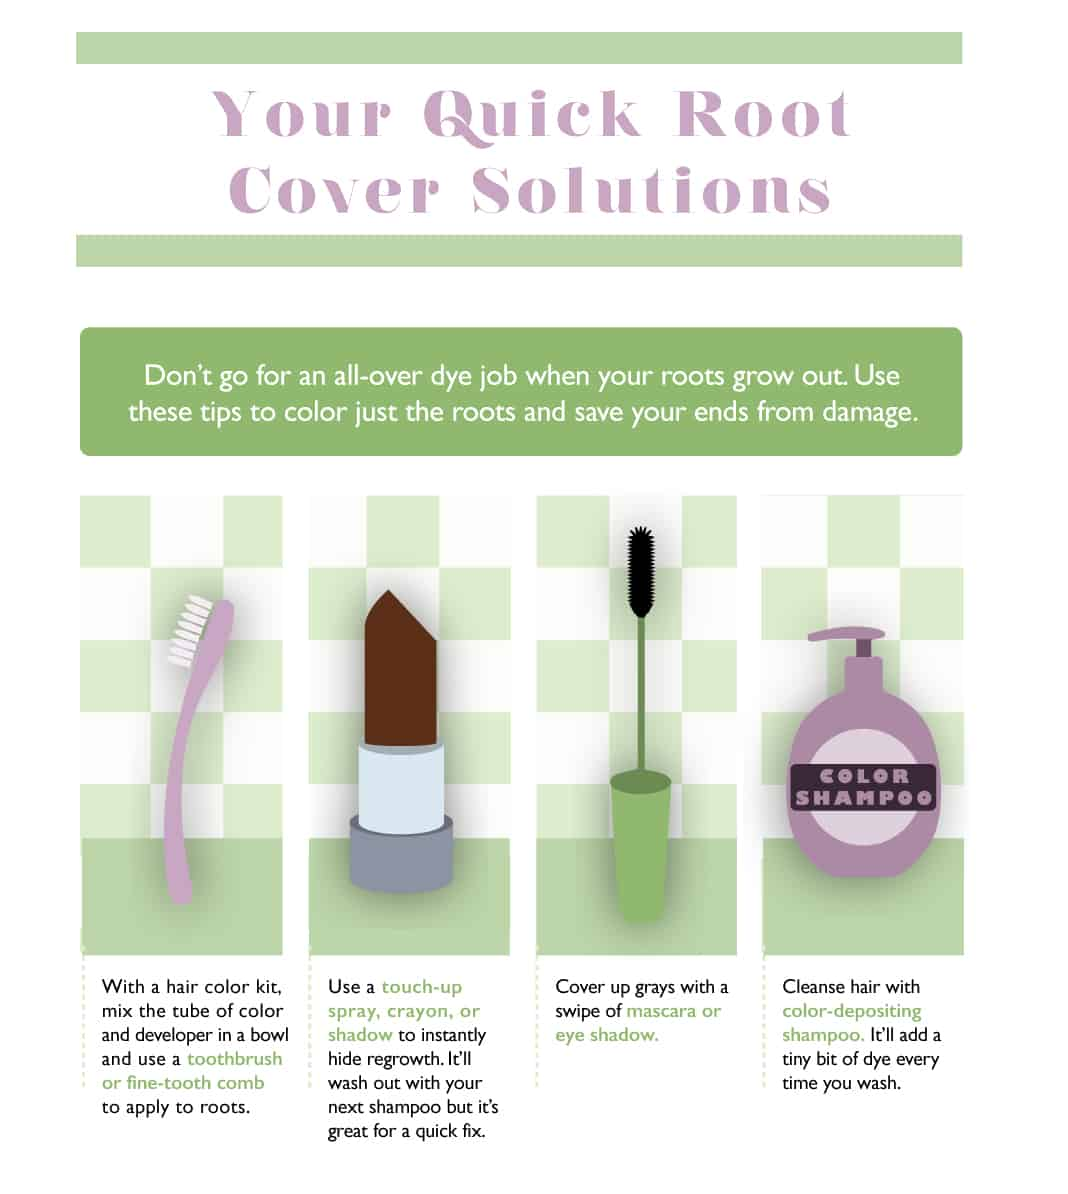 Quick Root Cover Solutions